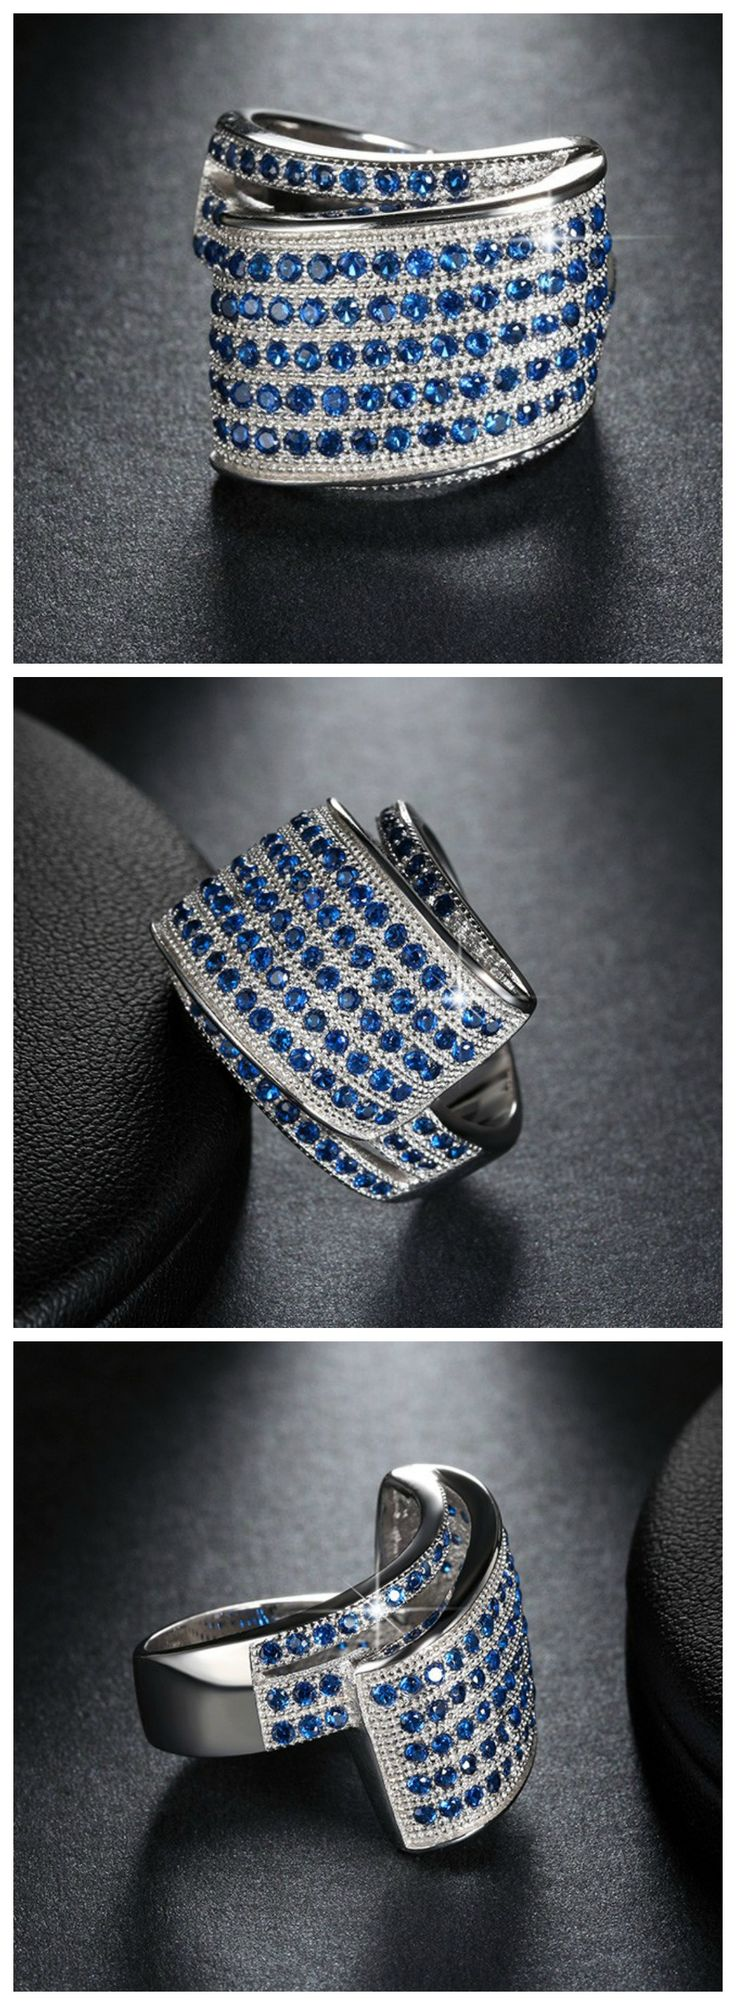 Ziphlets pave sapphire ring. Get 10% off with the code ZIPHLETS10